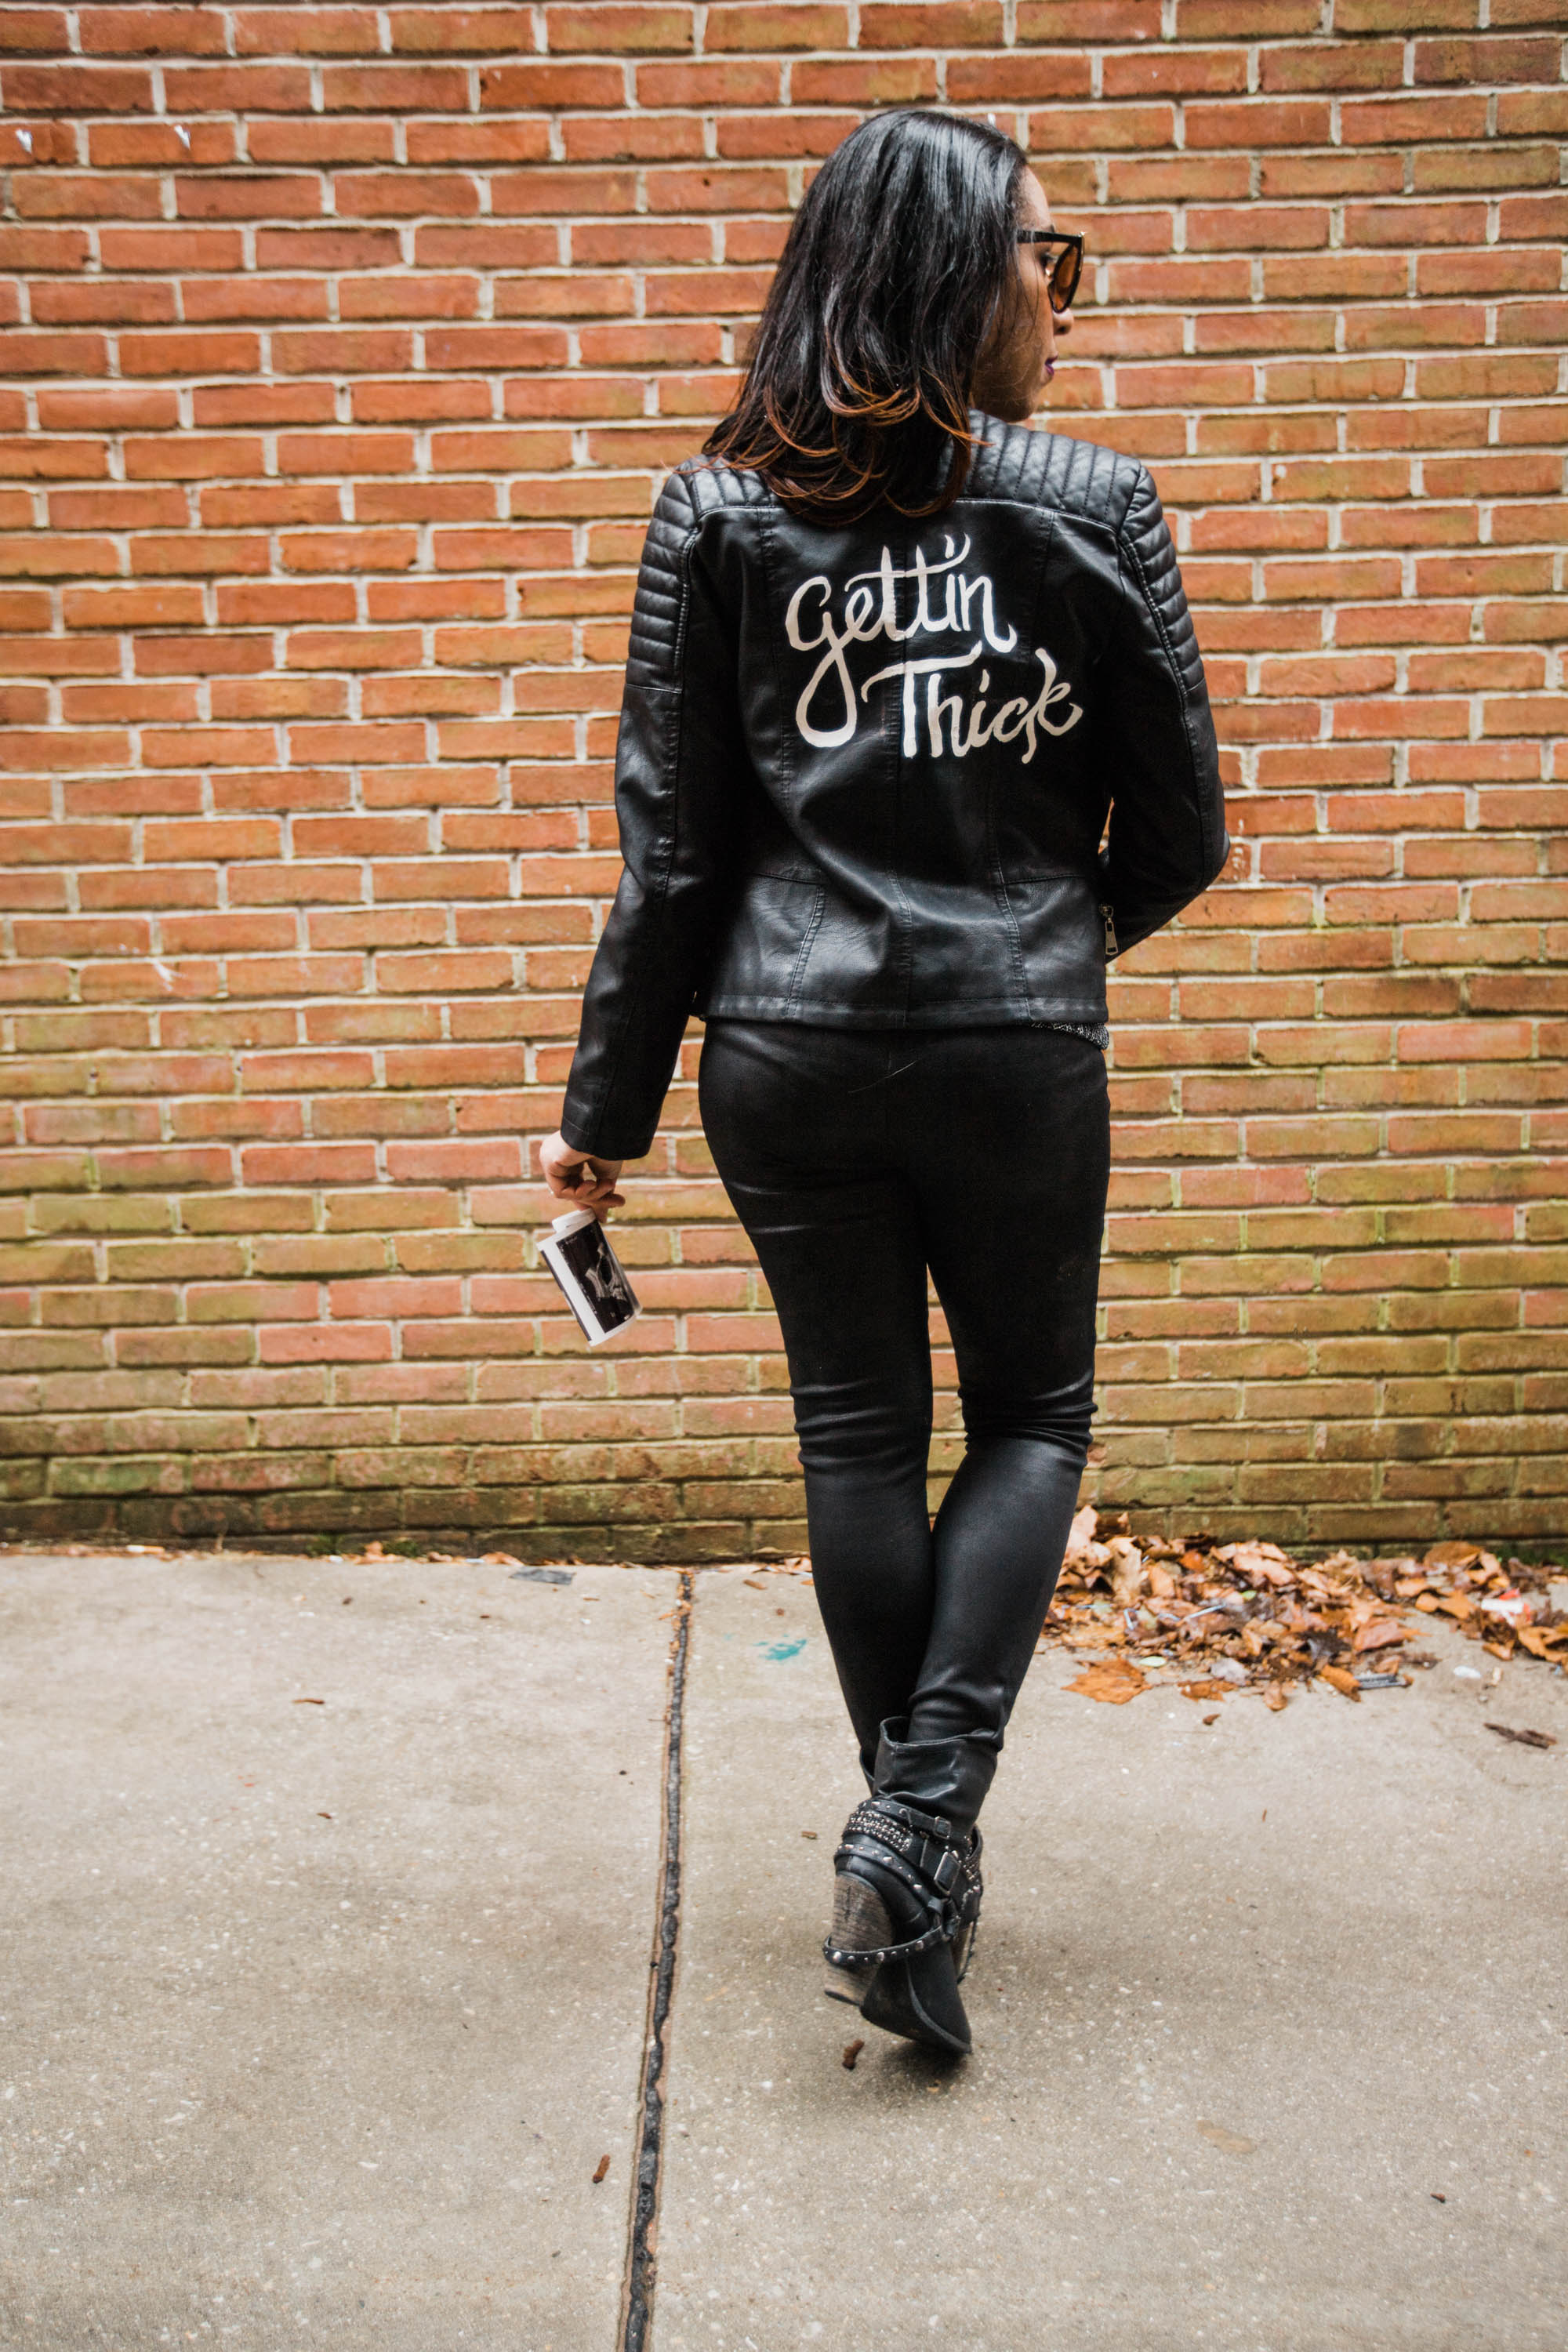 Hand lettered Black Leather jacket Pregnancy Announcement Baltimore Maternity Photographer Megapixels Media Photography-38.jpg